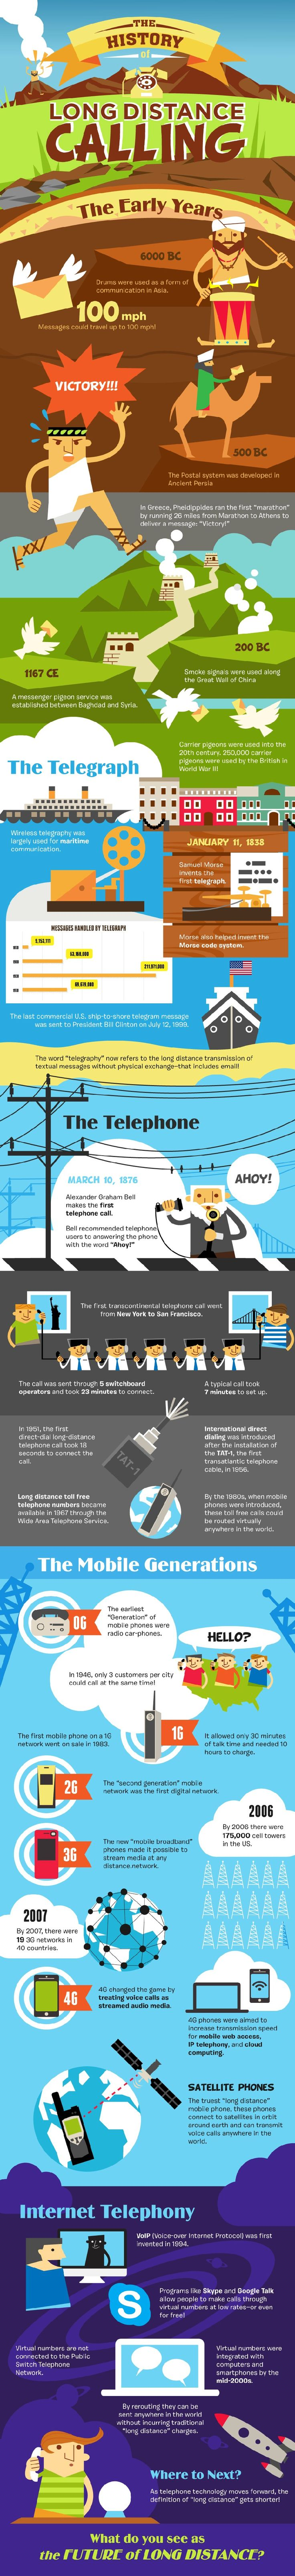 The History of Long Distance Calling: You may not remember any form of communication prior to the iPhone 5, but ever since drums were used to send messages in 6000 B.C., mankind has been on the path to developing easy, efficient worldwide communication.  #telecommunications #infographic